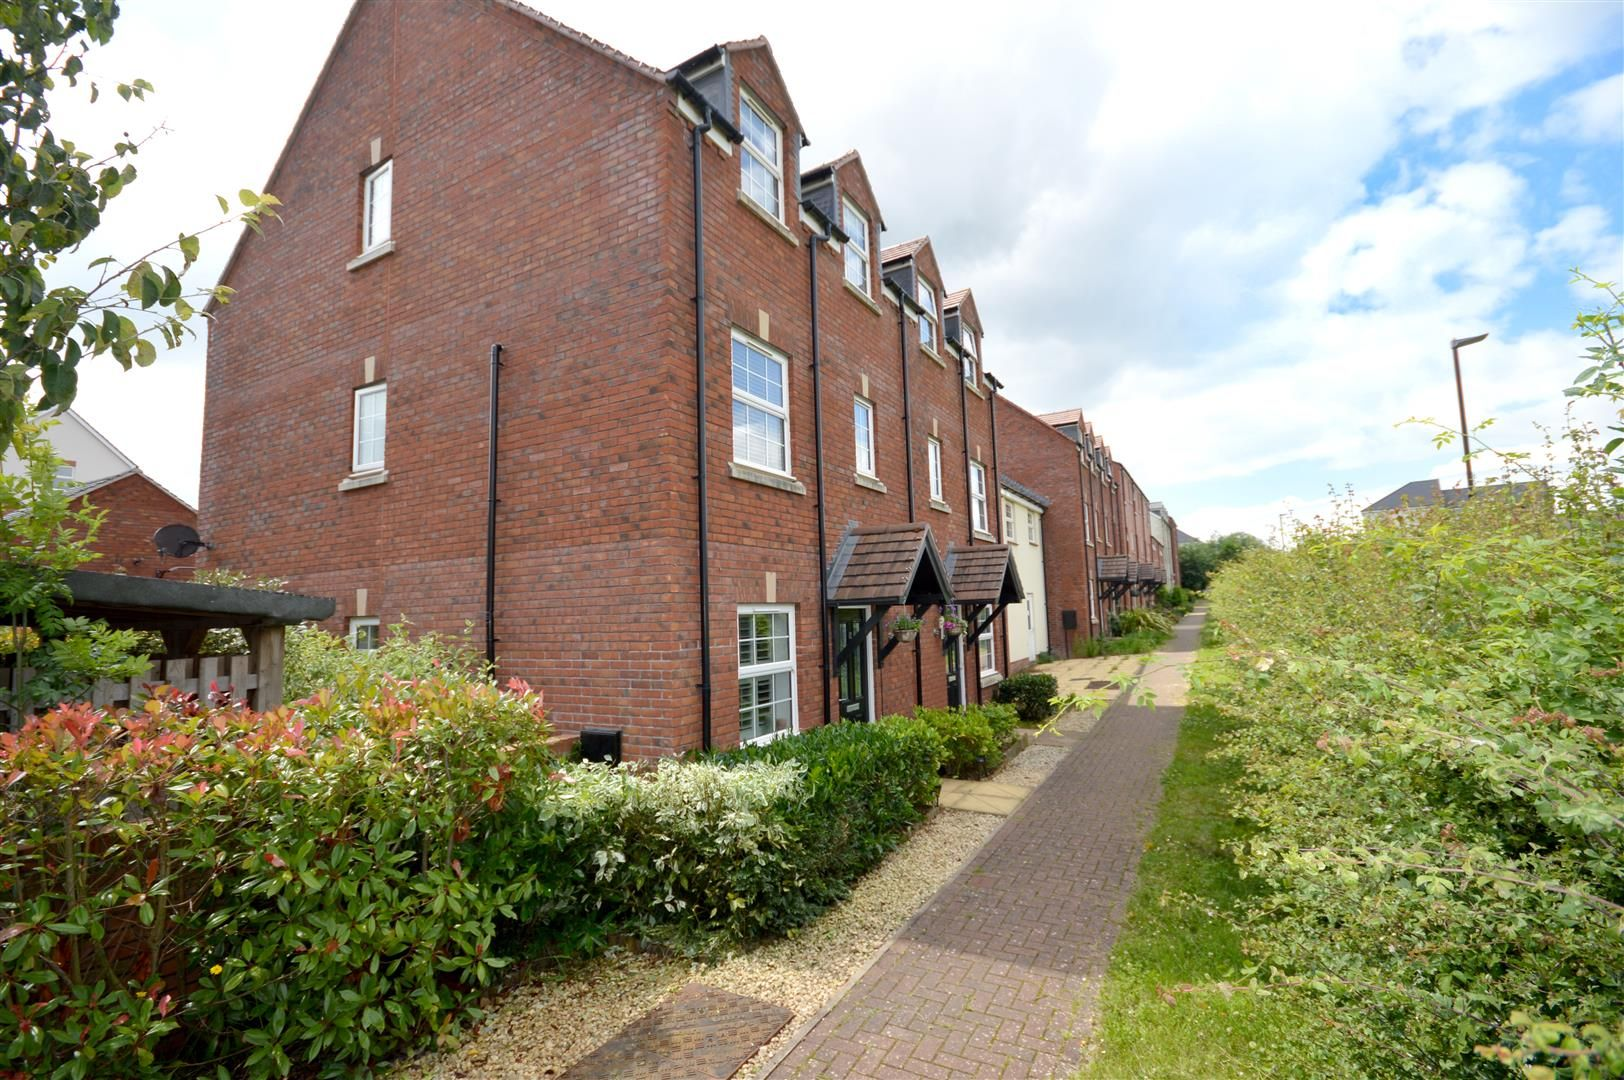 4 bed end of terrace for sale in Holmer, HR1